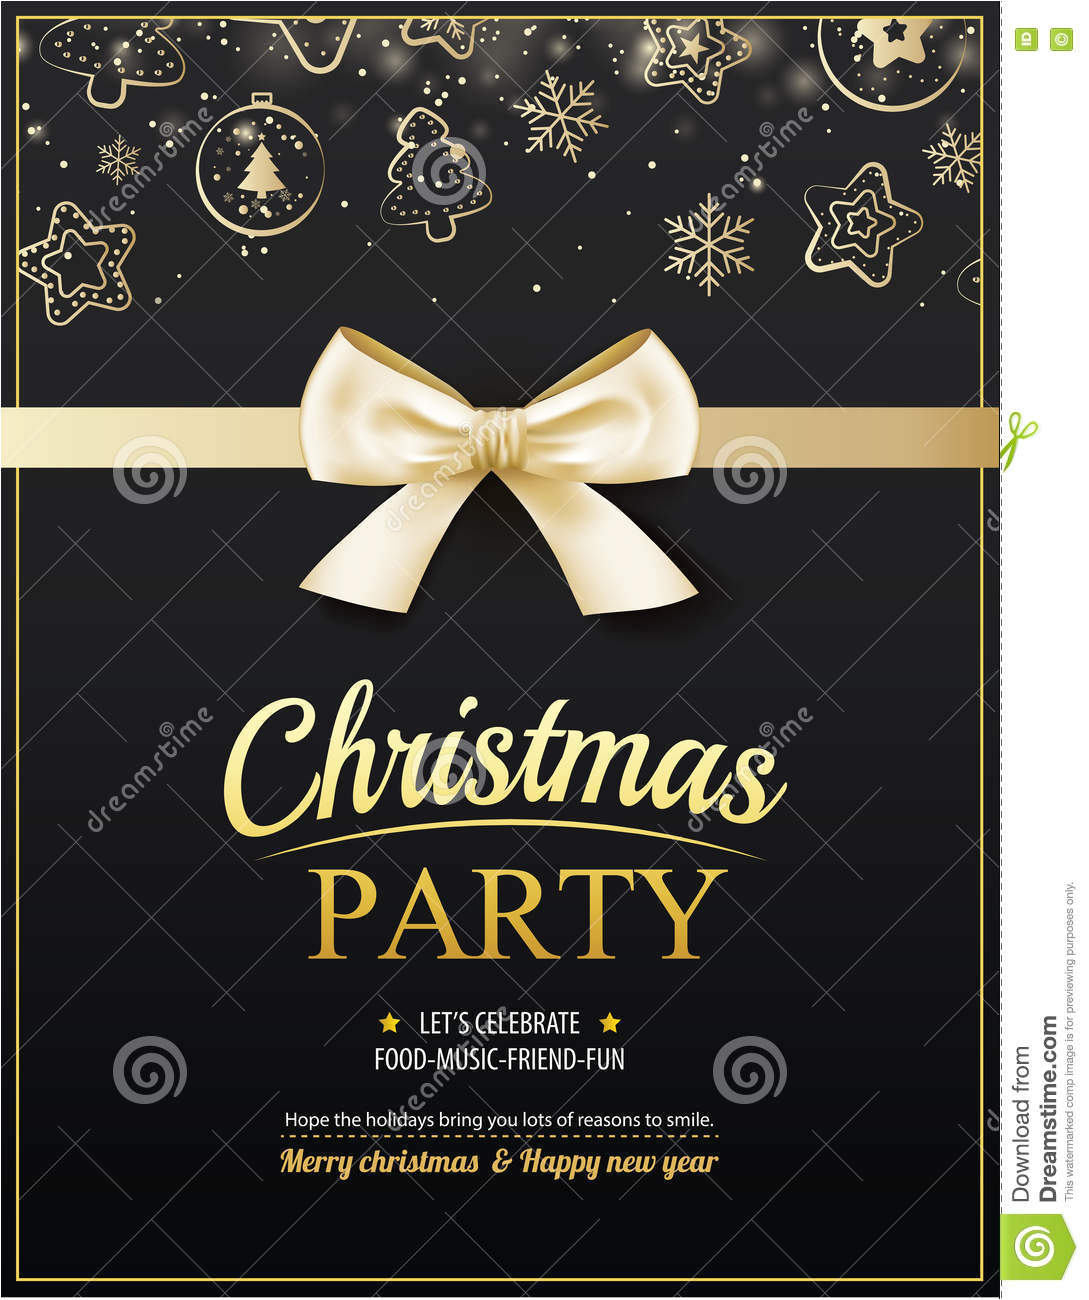 invitation merry christmas party poster banner card design template happy holiday new year gold ribbon theme concept 81687100 jpg